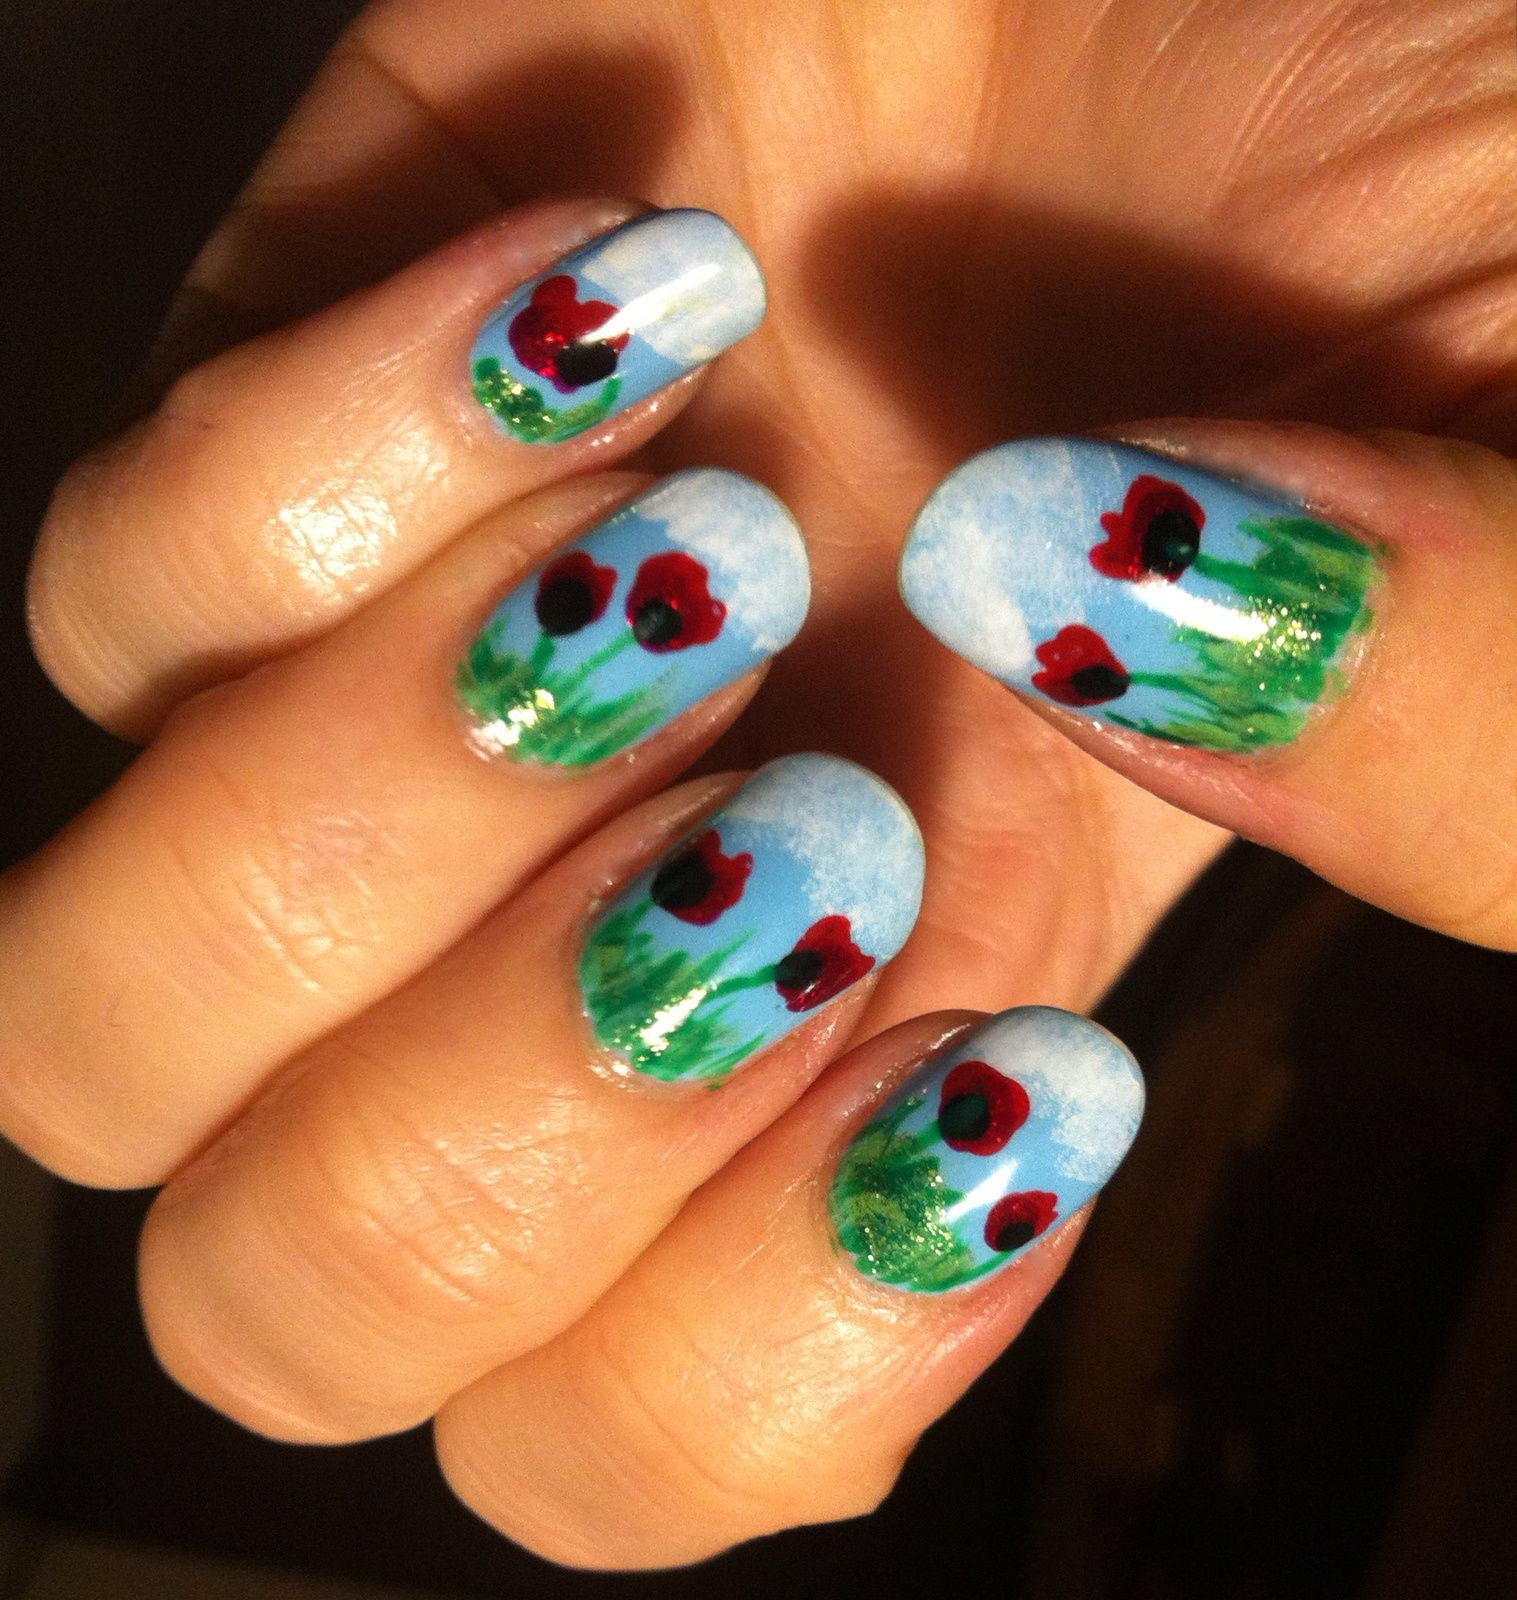 nailstorming flower power